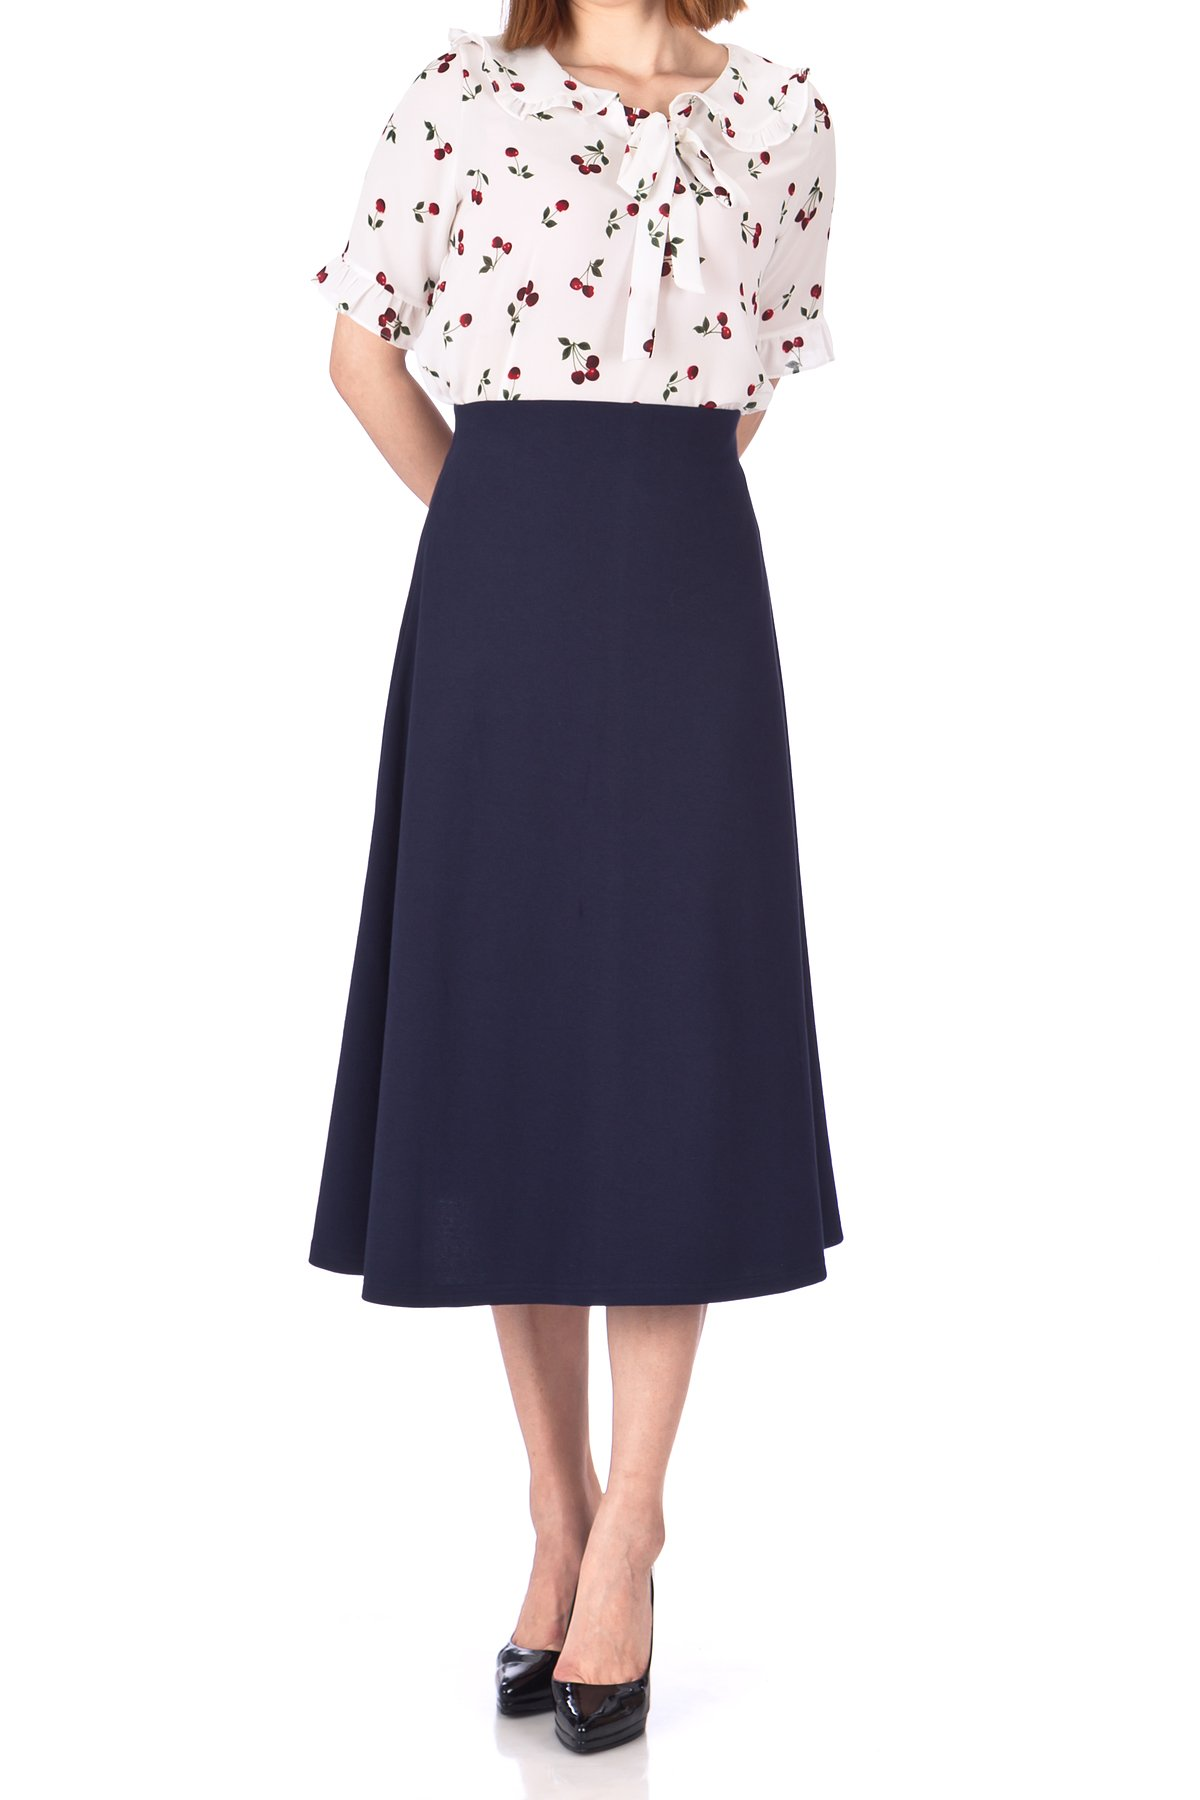 Elastic Waist A line Flared Long Skirt Navy 02